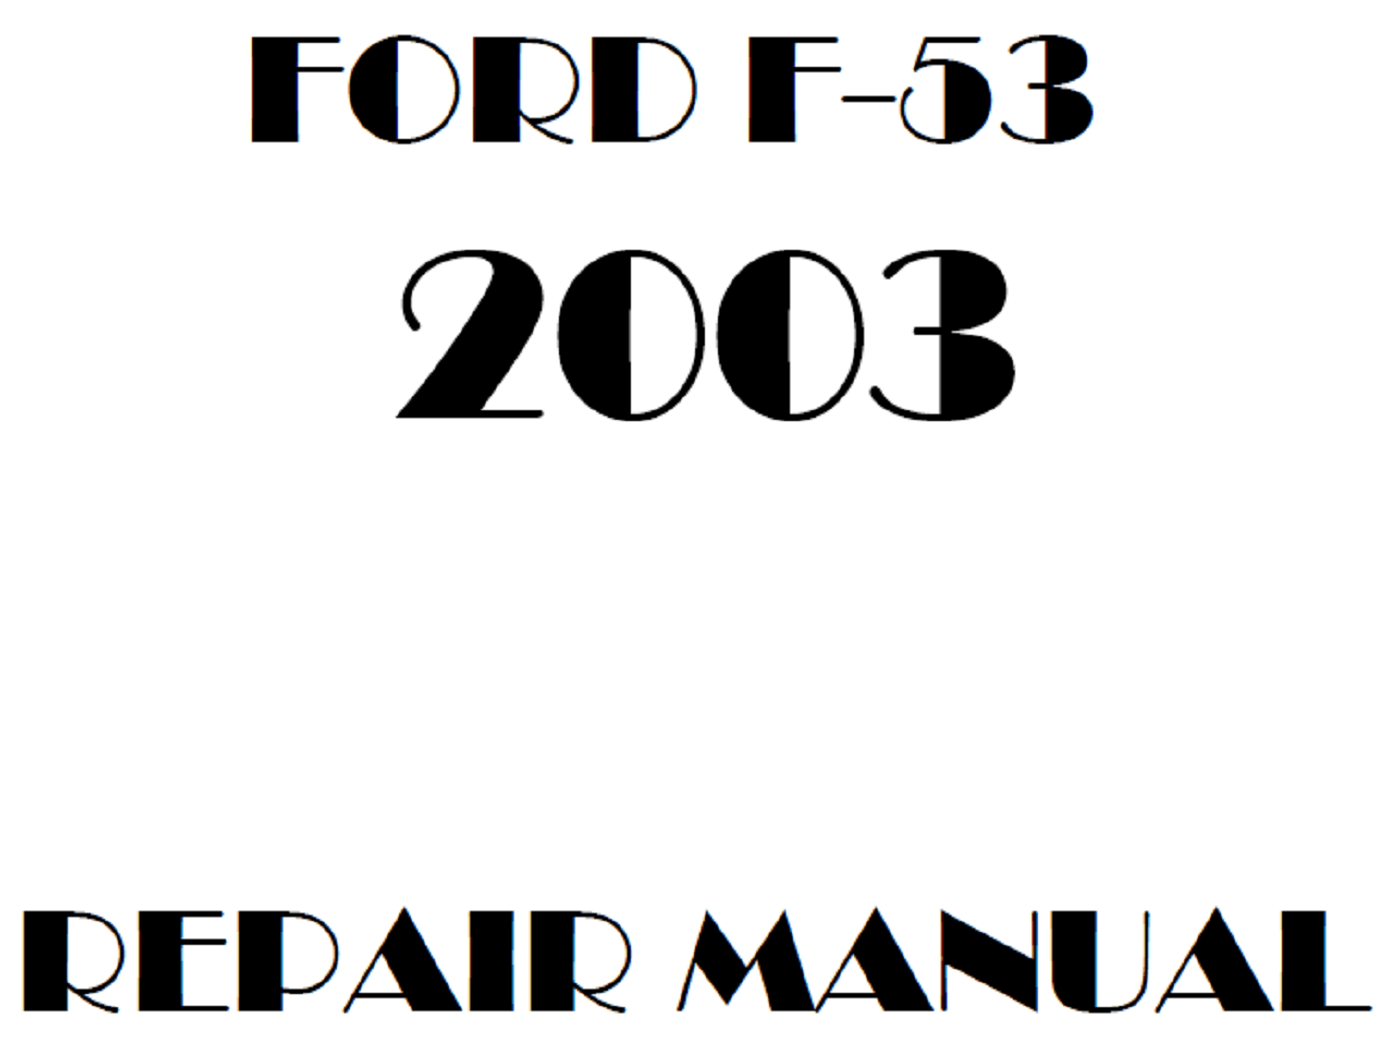 Ford F53 Repair Manual